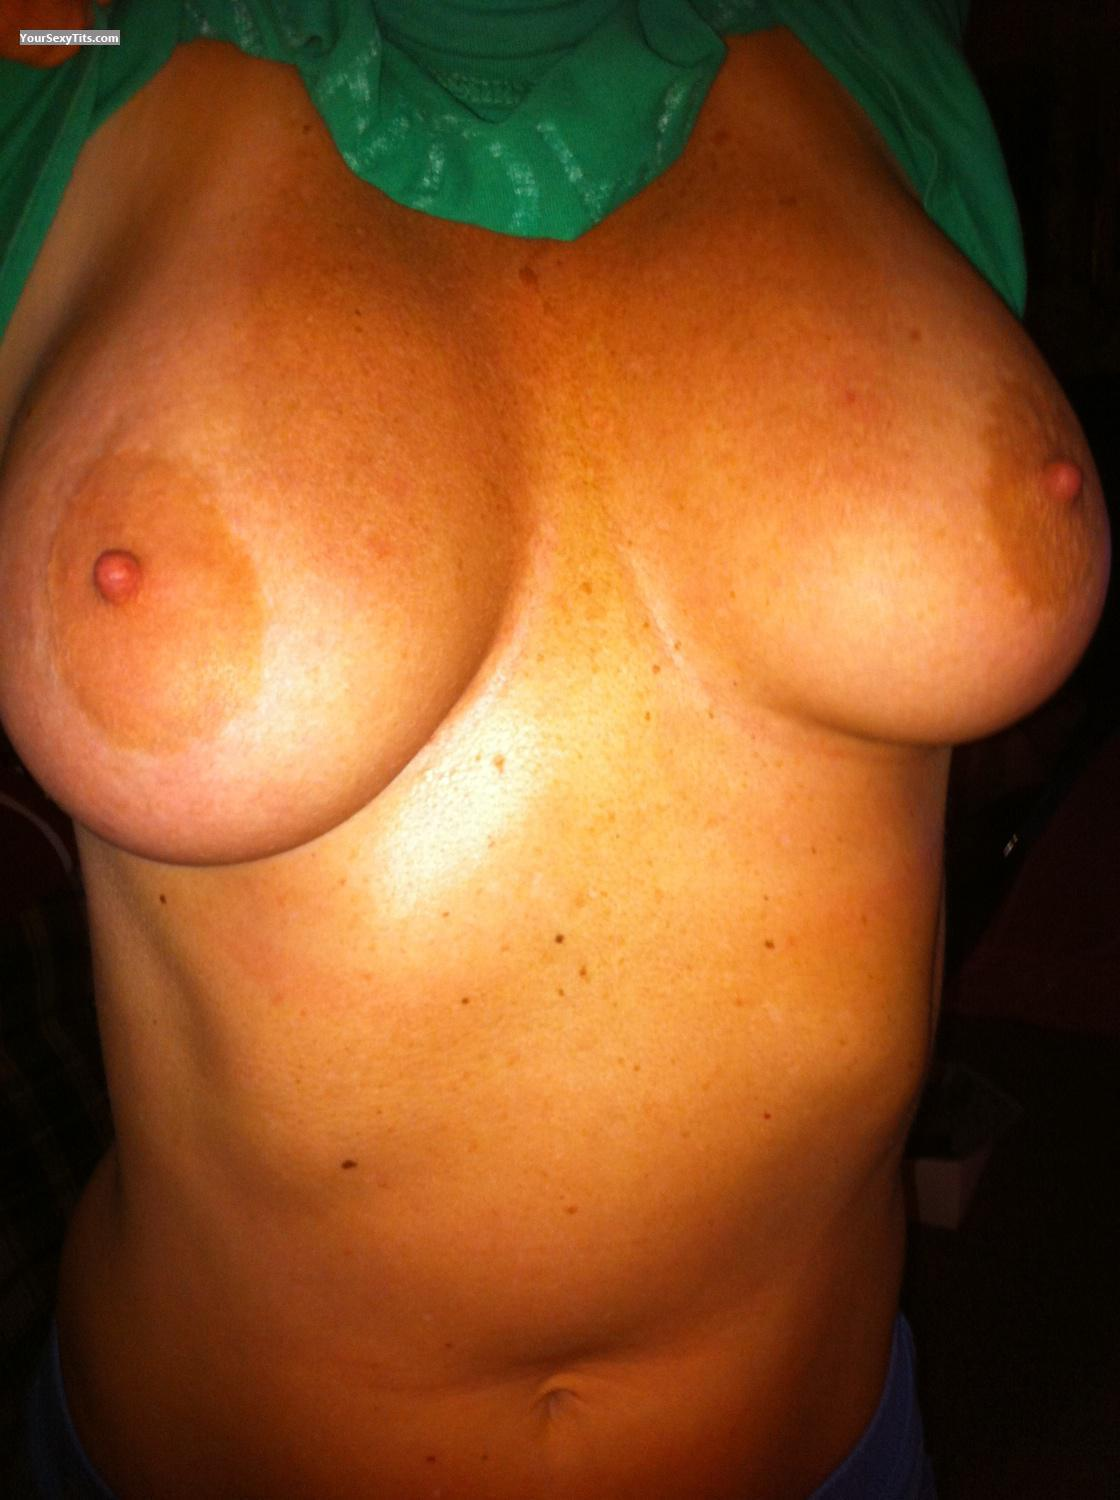 Tit Flash: Medium Tits By IPhone - Gannman from United States